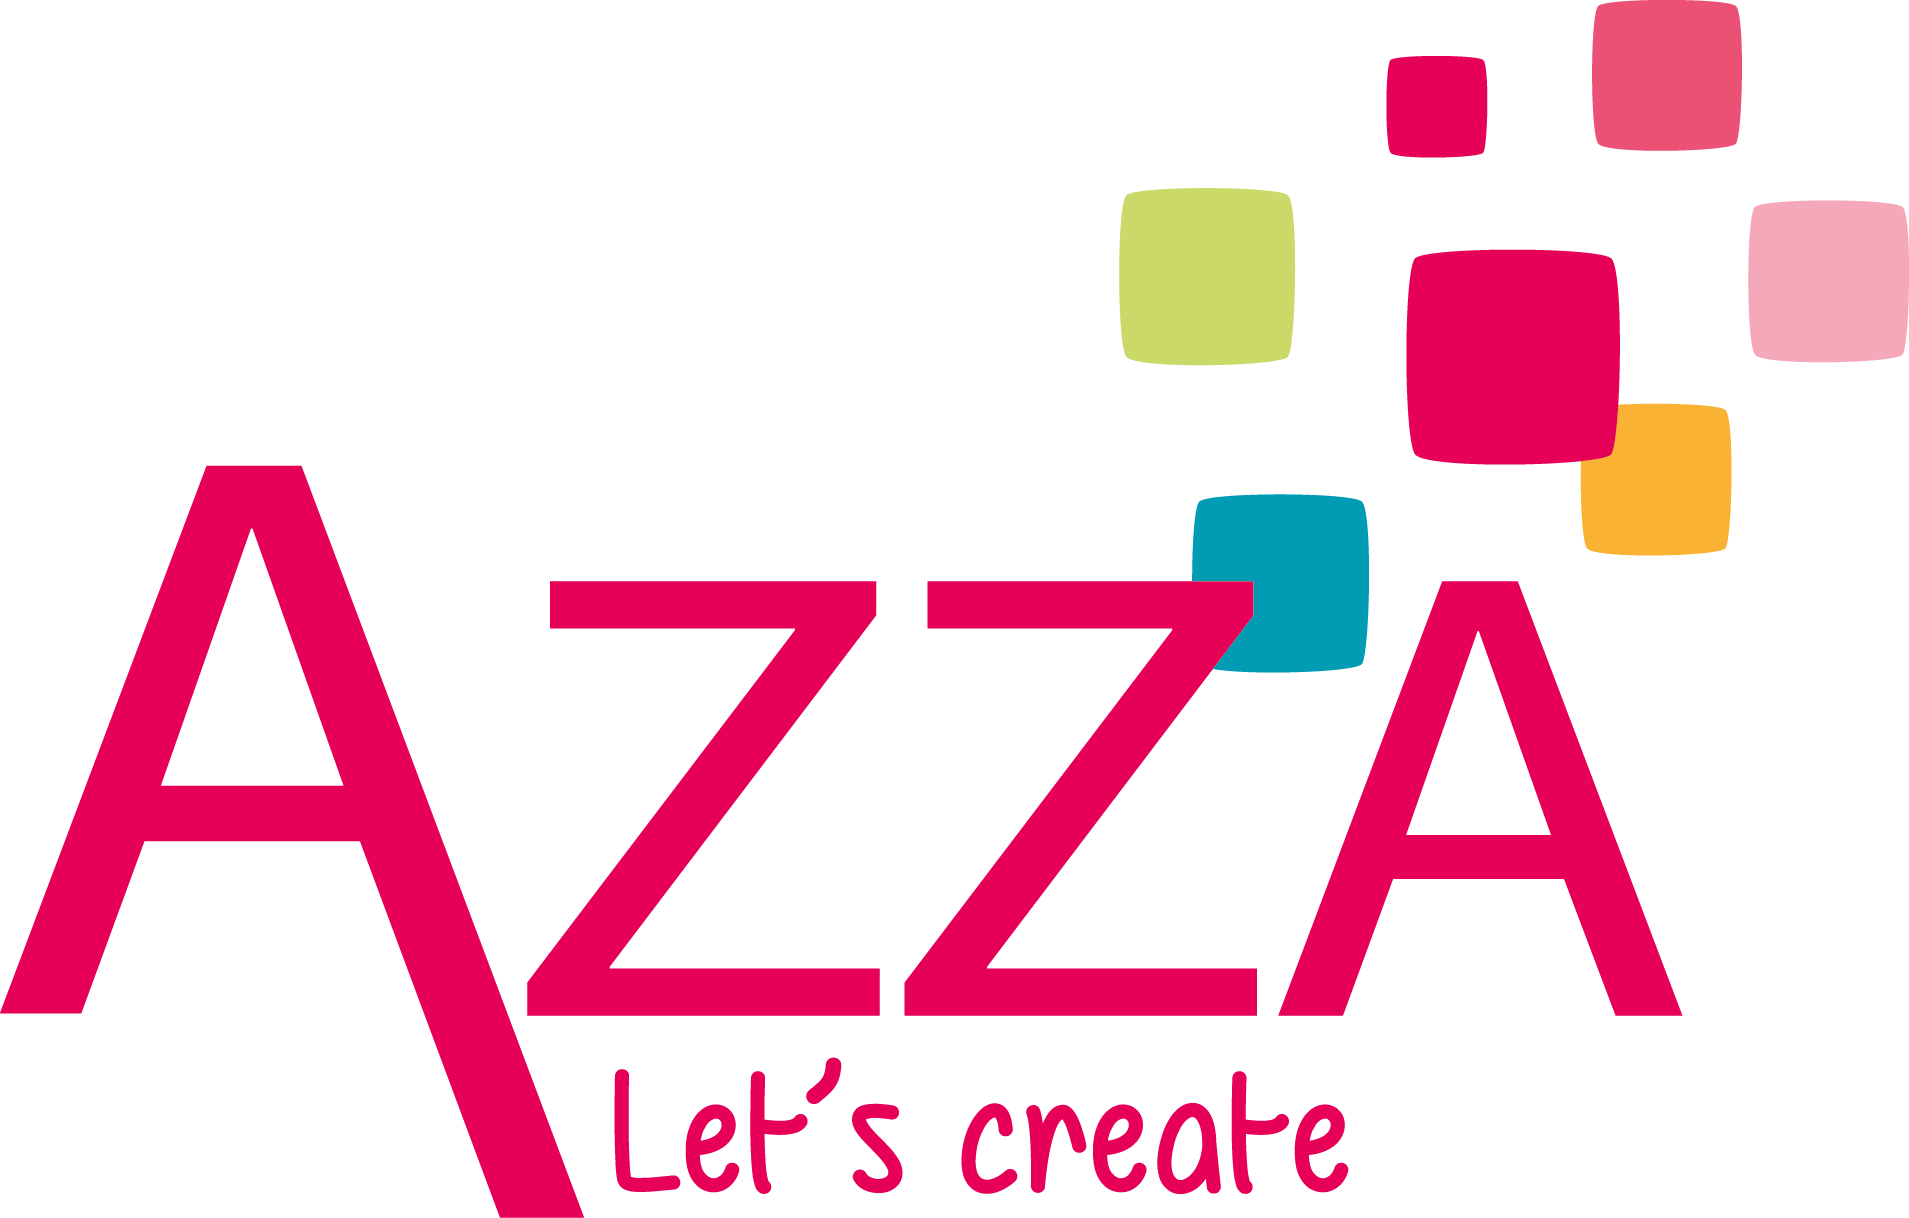 azza logo in footer